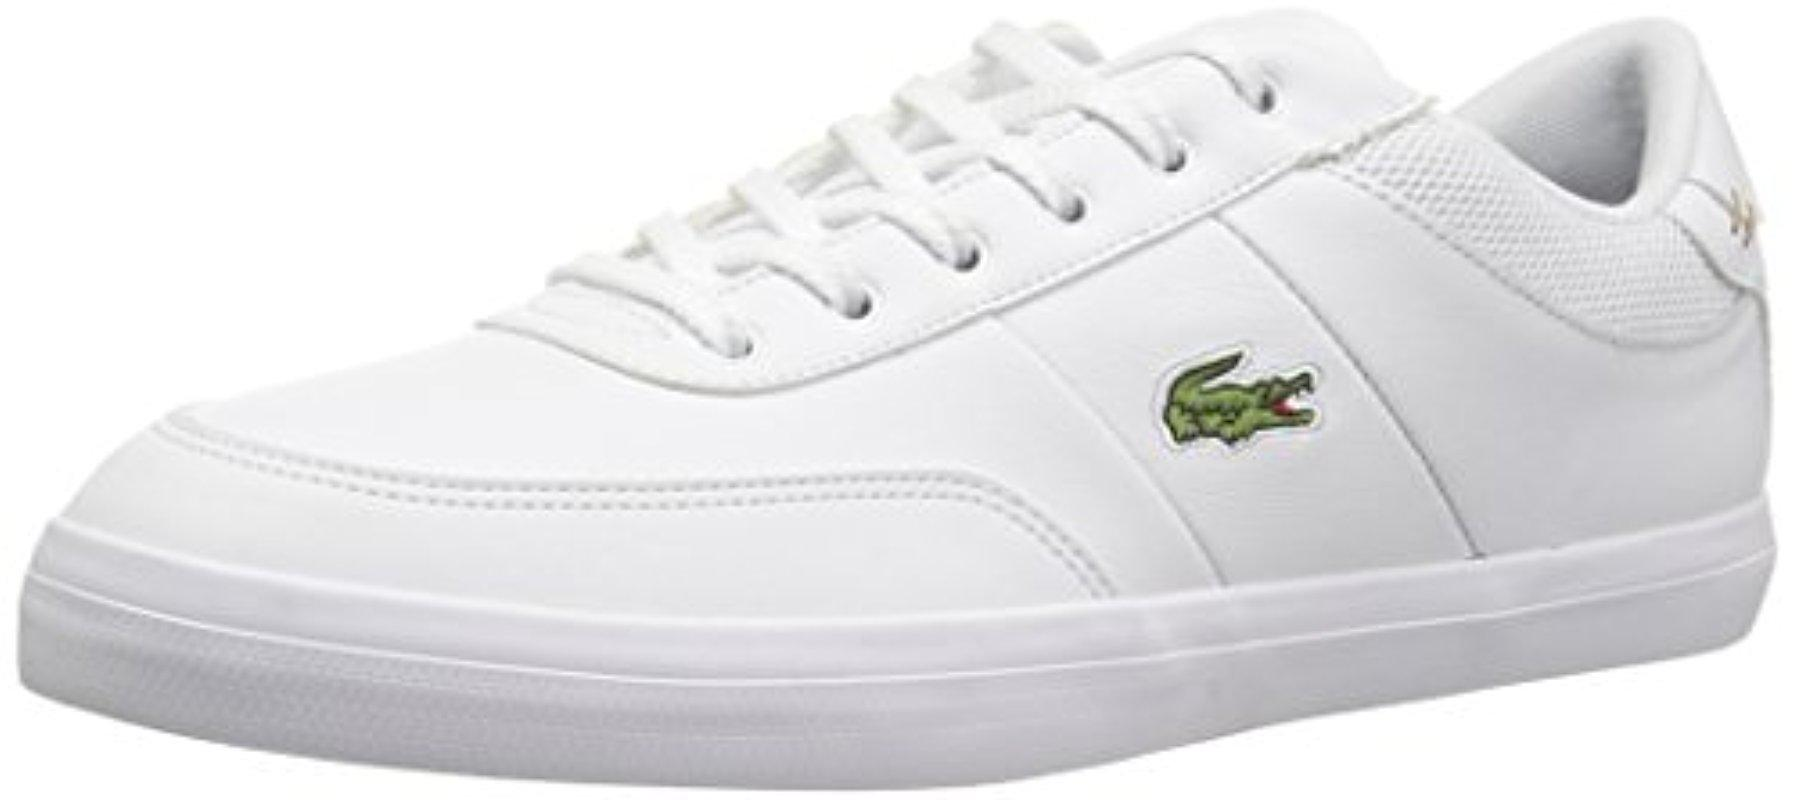 Lacoste Leather Court-master 118 2